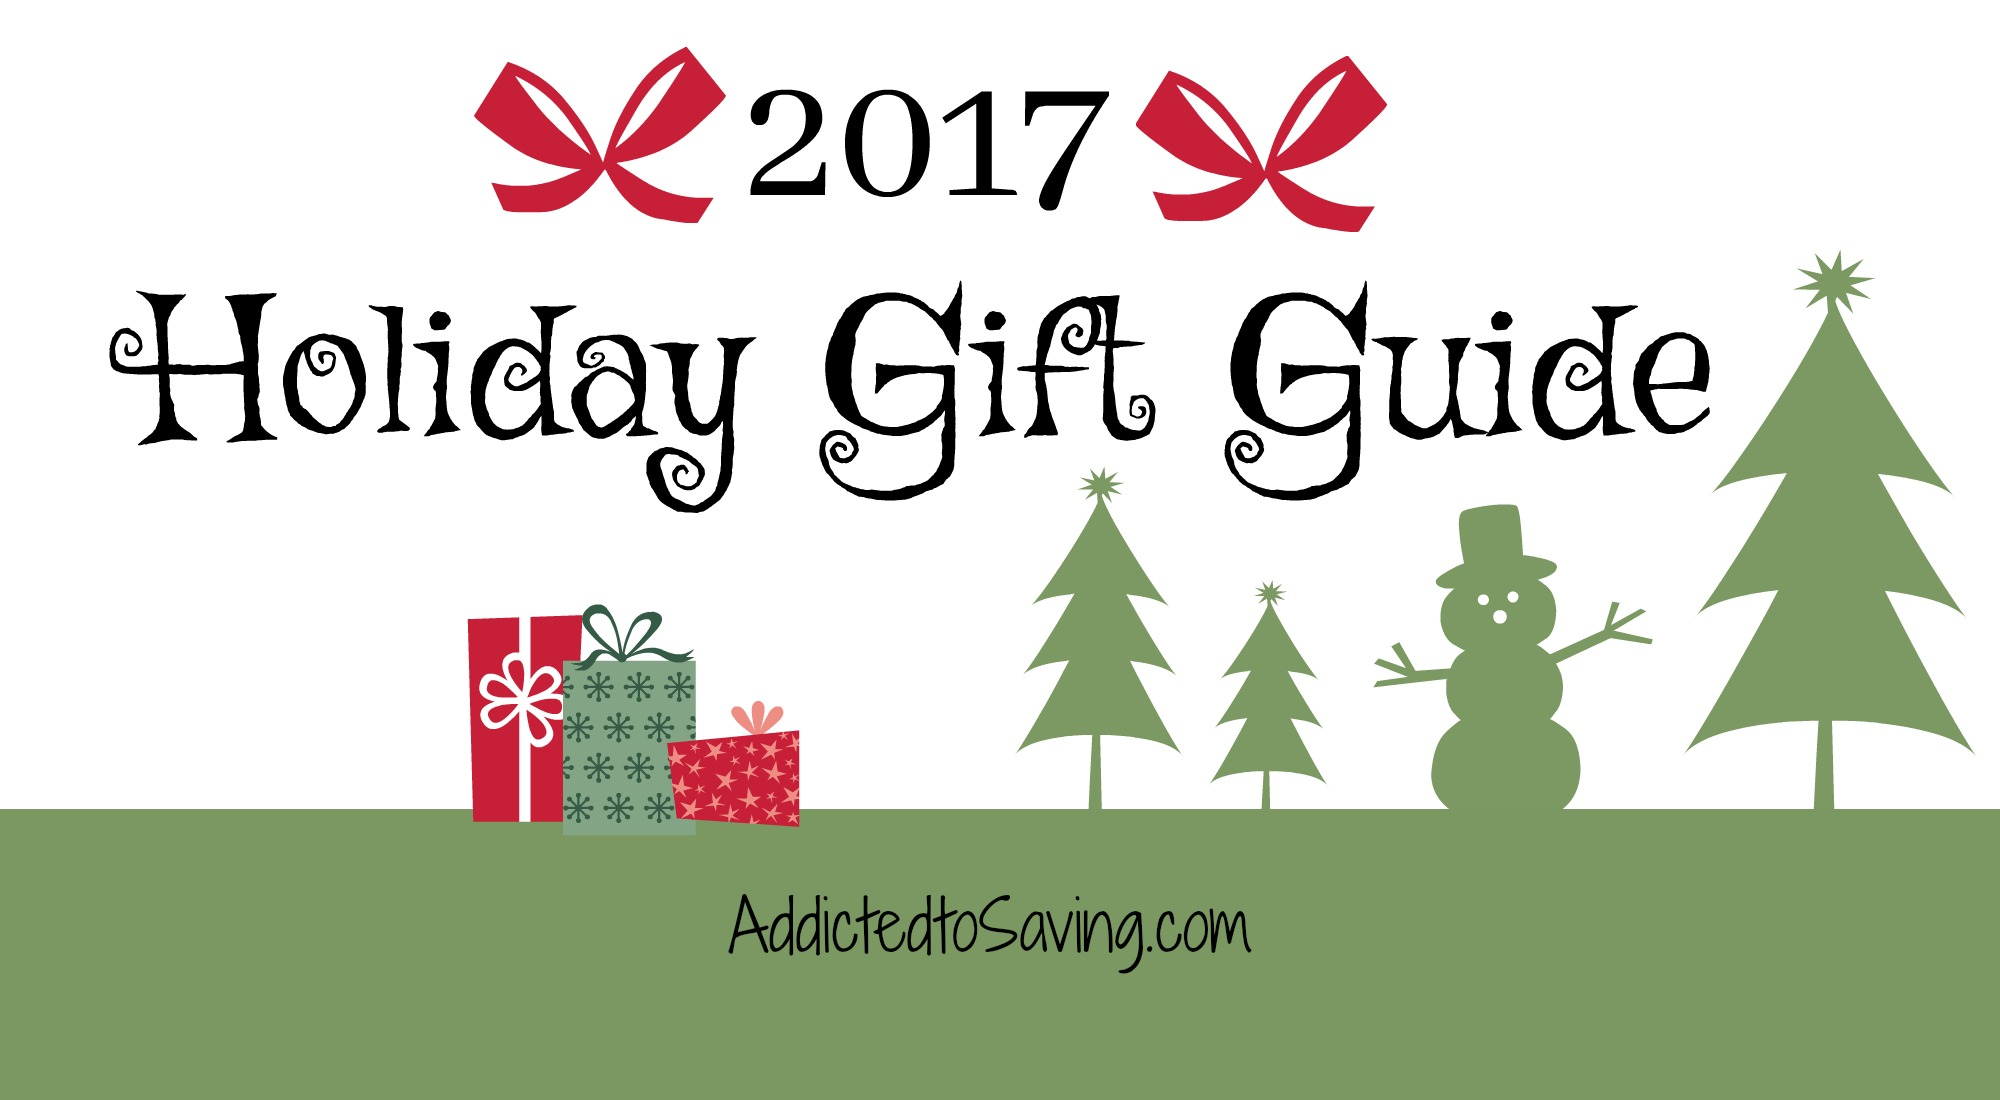 Beach Rolly Aldi 2017 Holiday Gift Guide Addictedtosaving